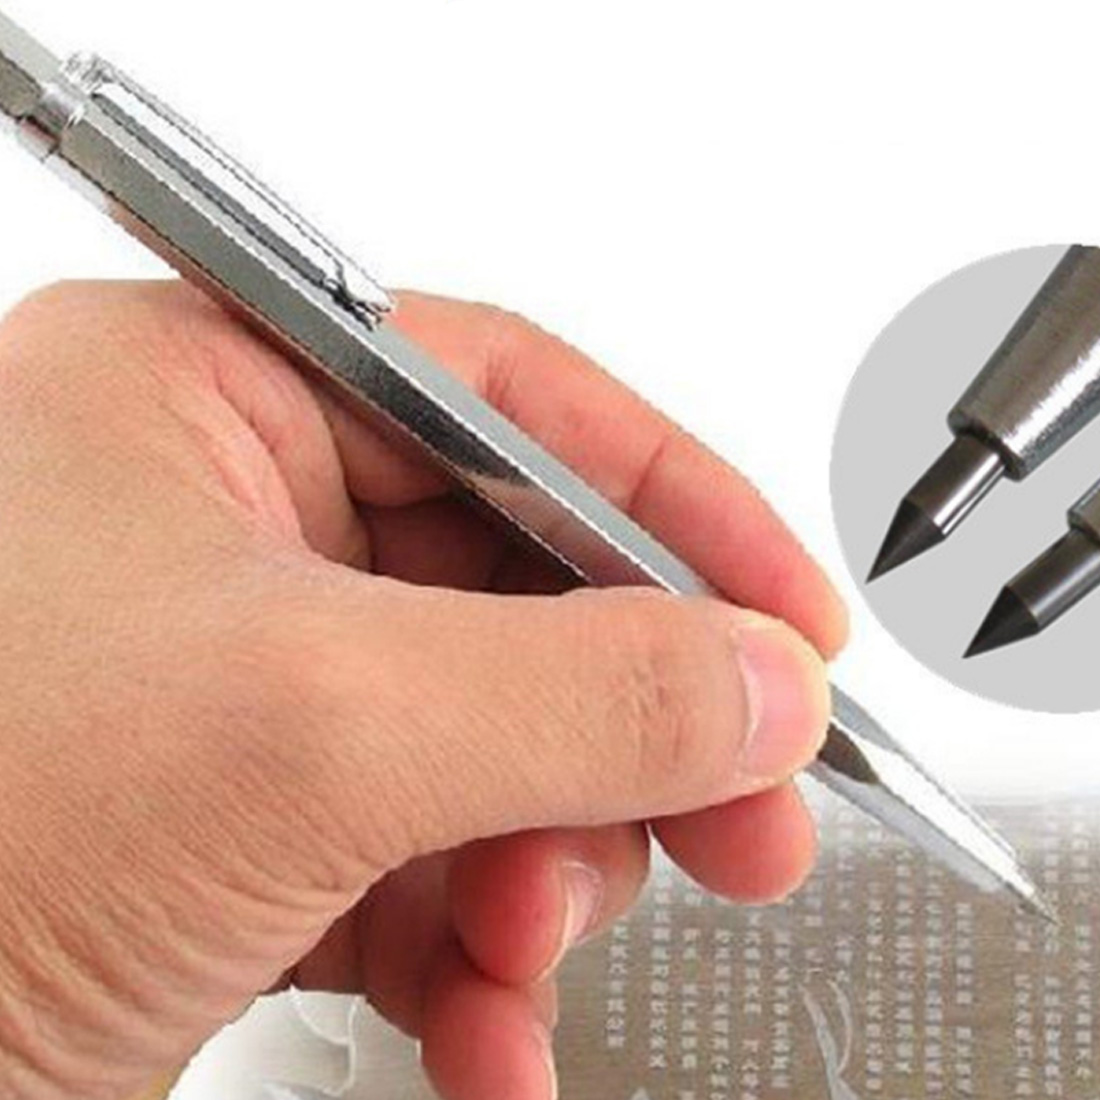 Tungsten Steel Tip Scriber Marking Etching Pen Marking Tools For Ceramics Glass Silicon Quartz Shell Metal Tool